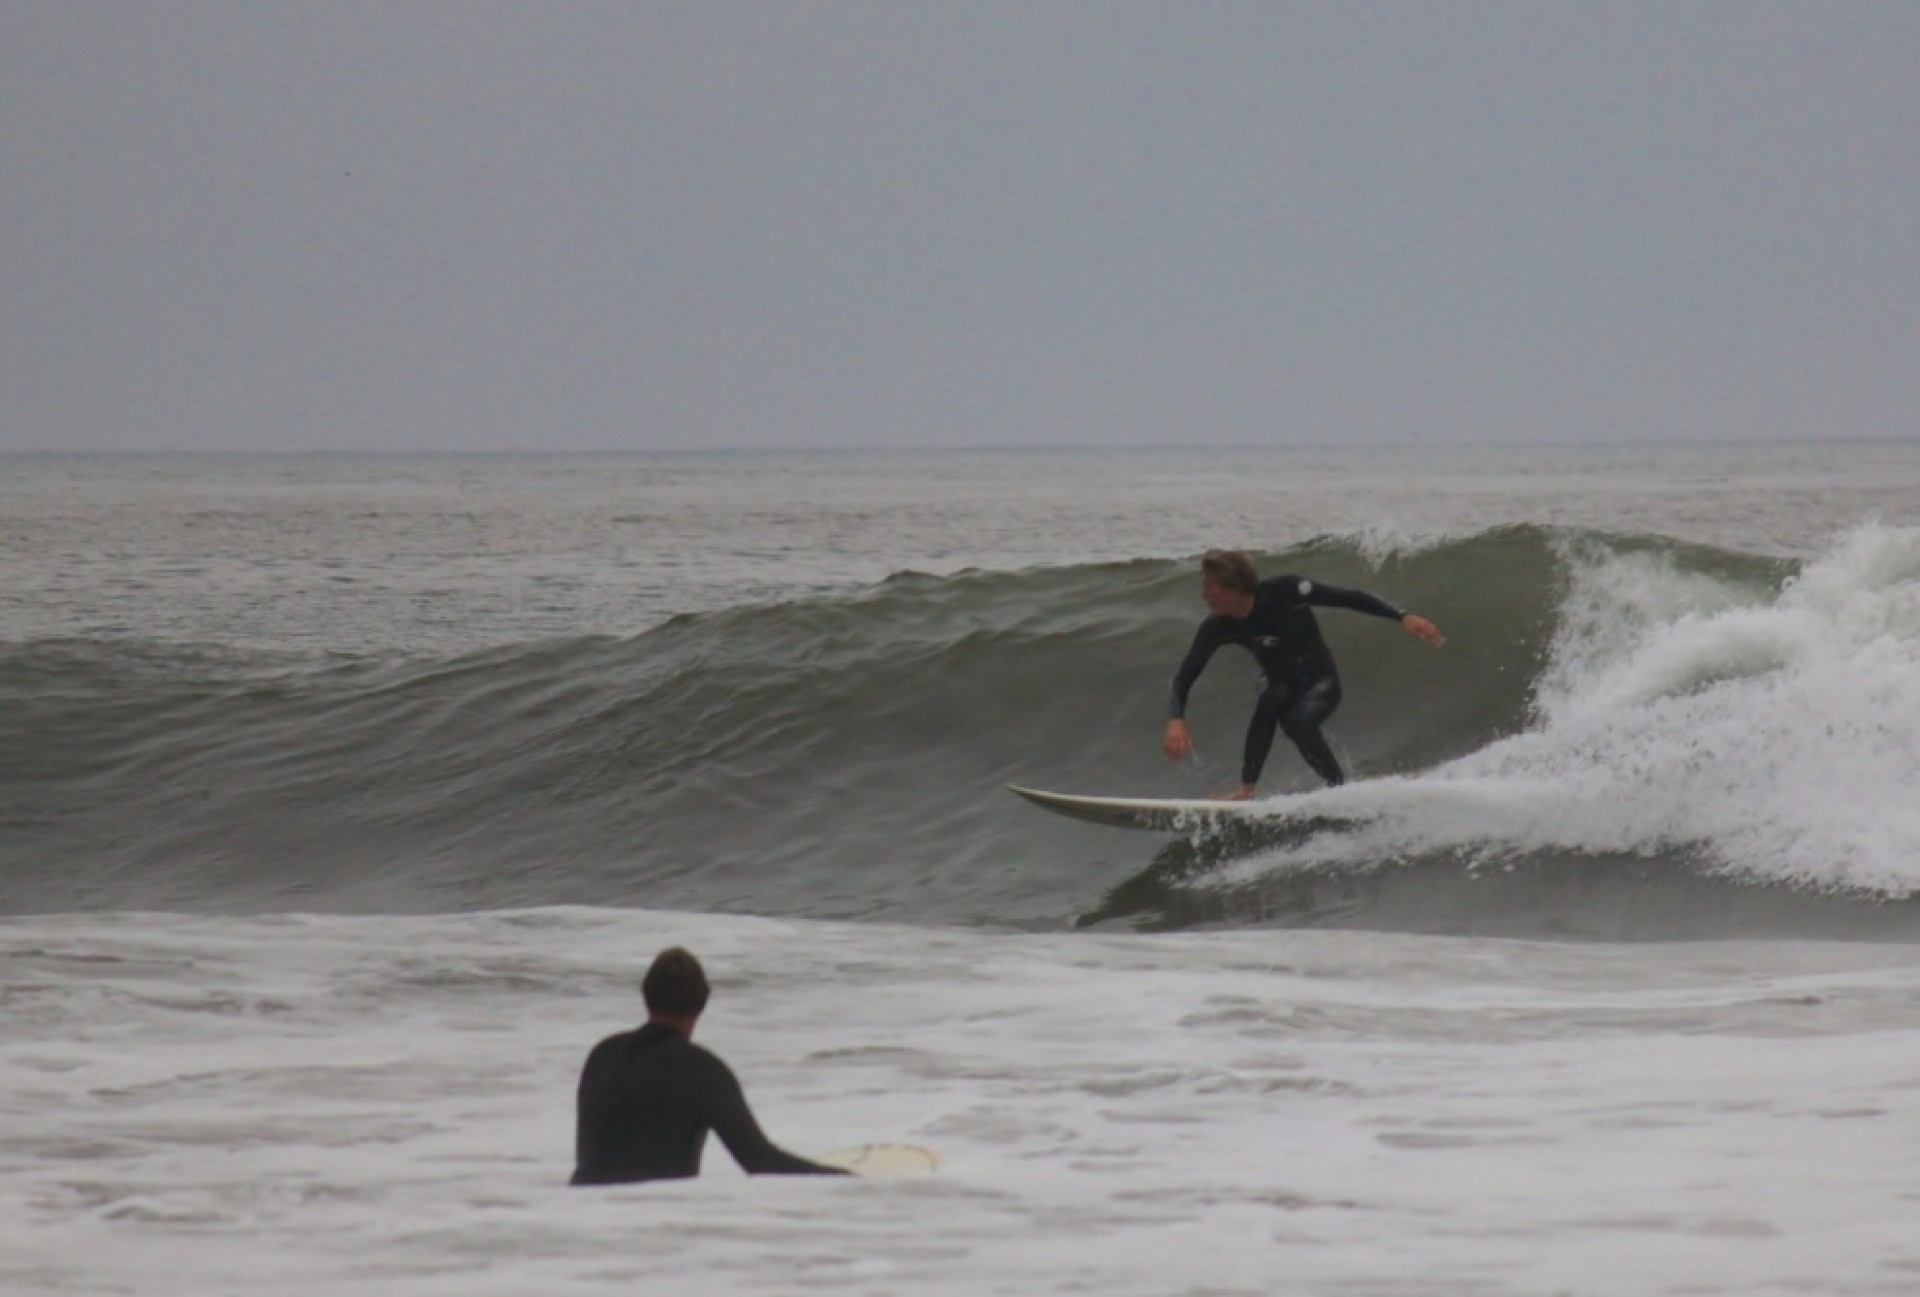 Surfer's photo of Solana Beach